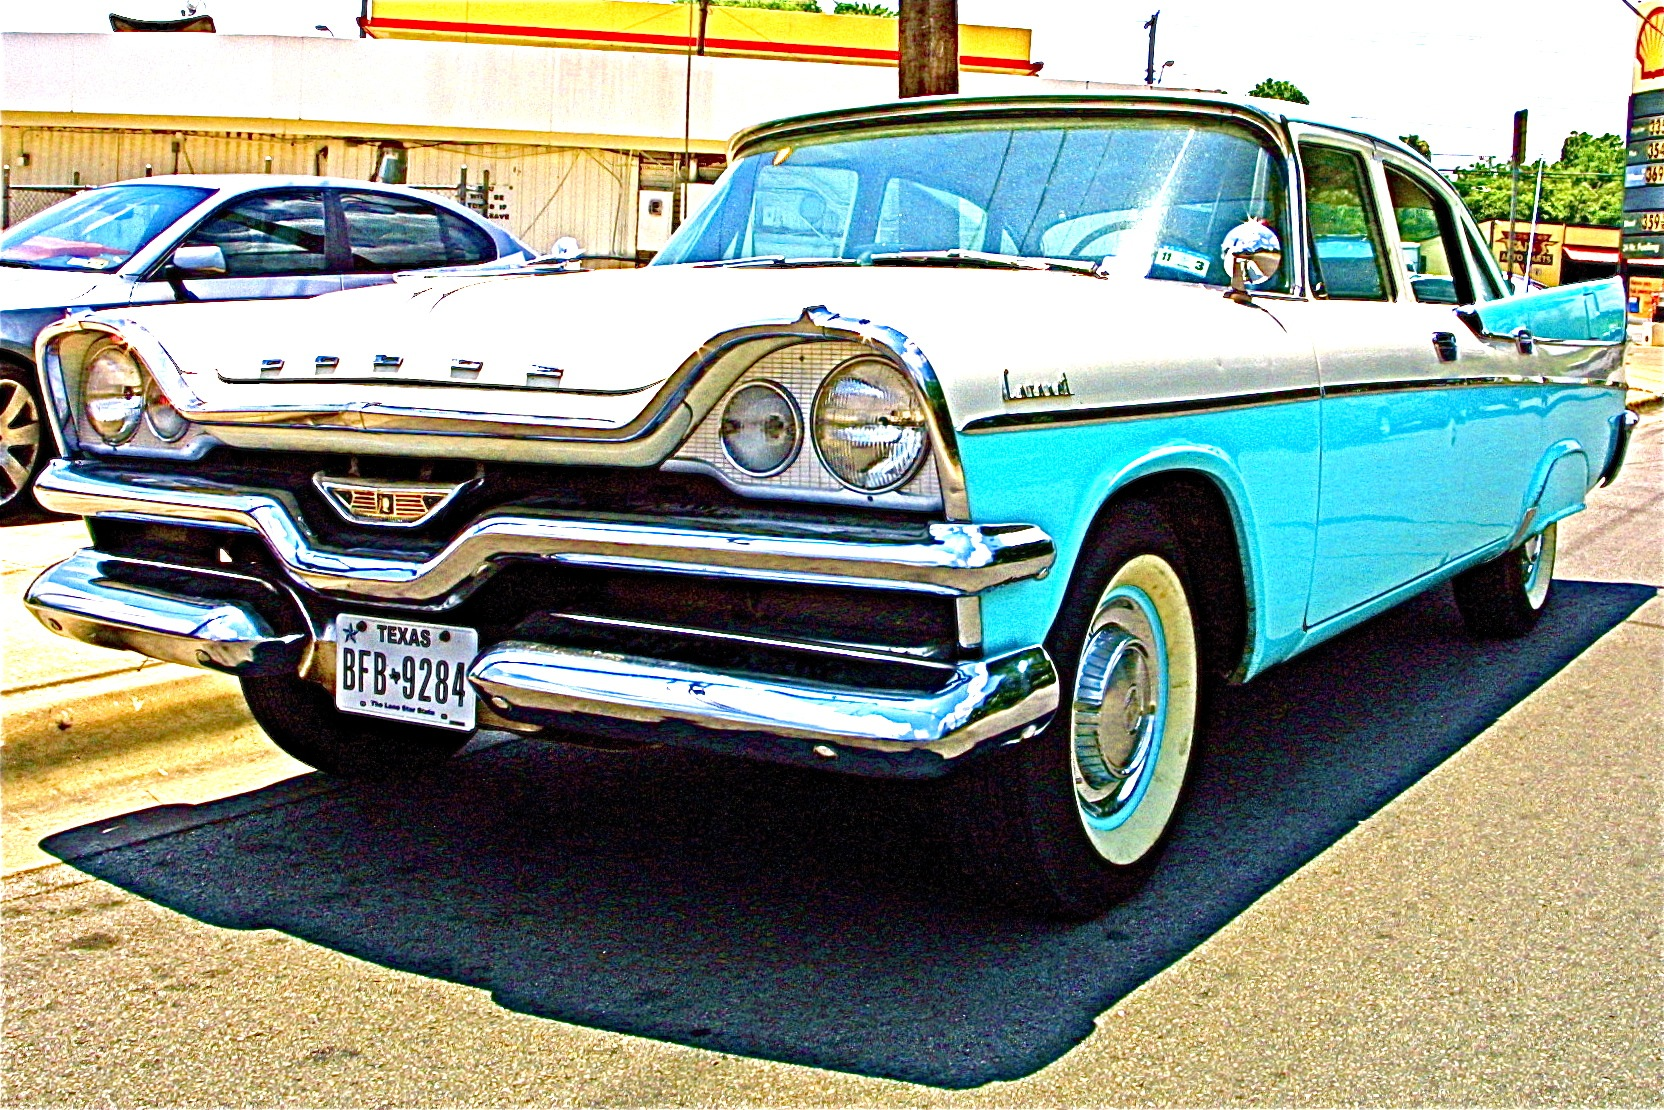 Cars For Sale Austin Tx >> 1957 Dodge Coronet Sedan in S. Austin | ATX Car Pictures | Real Pics from Austin TX Streets ...